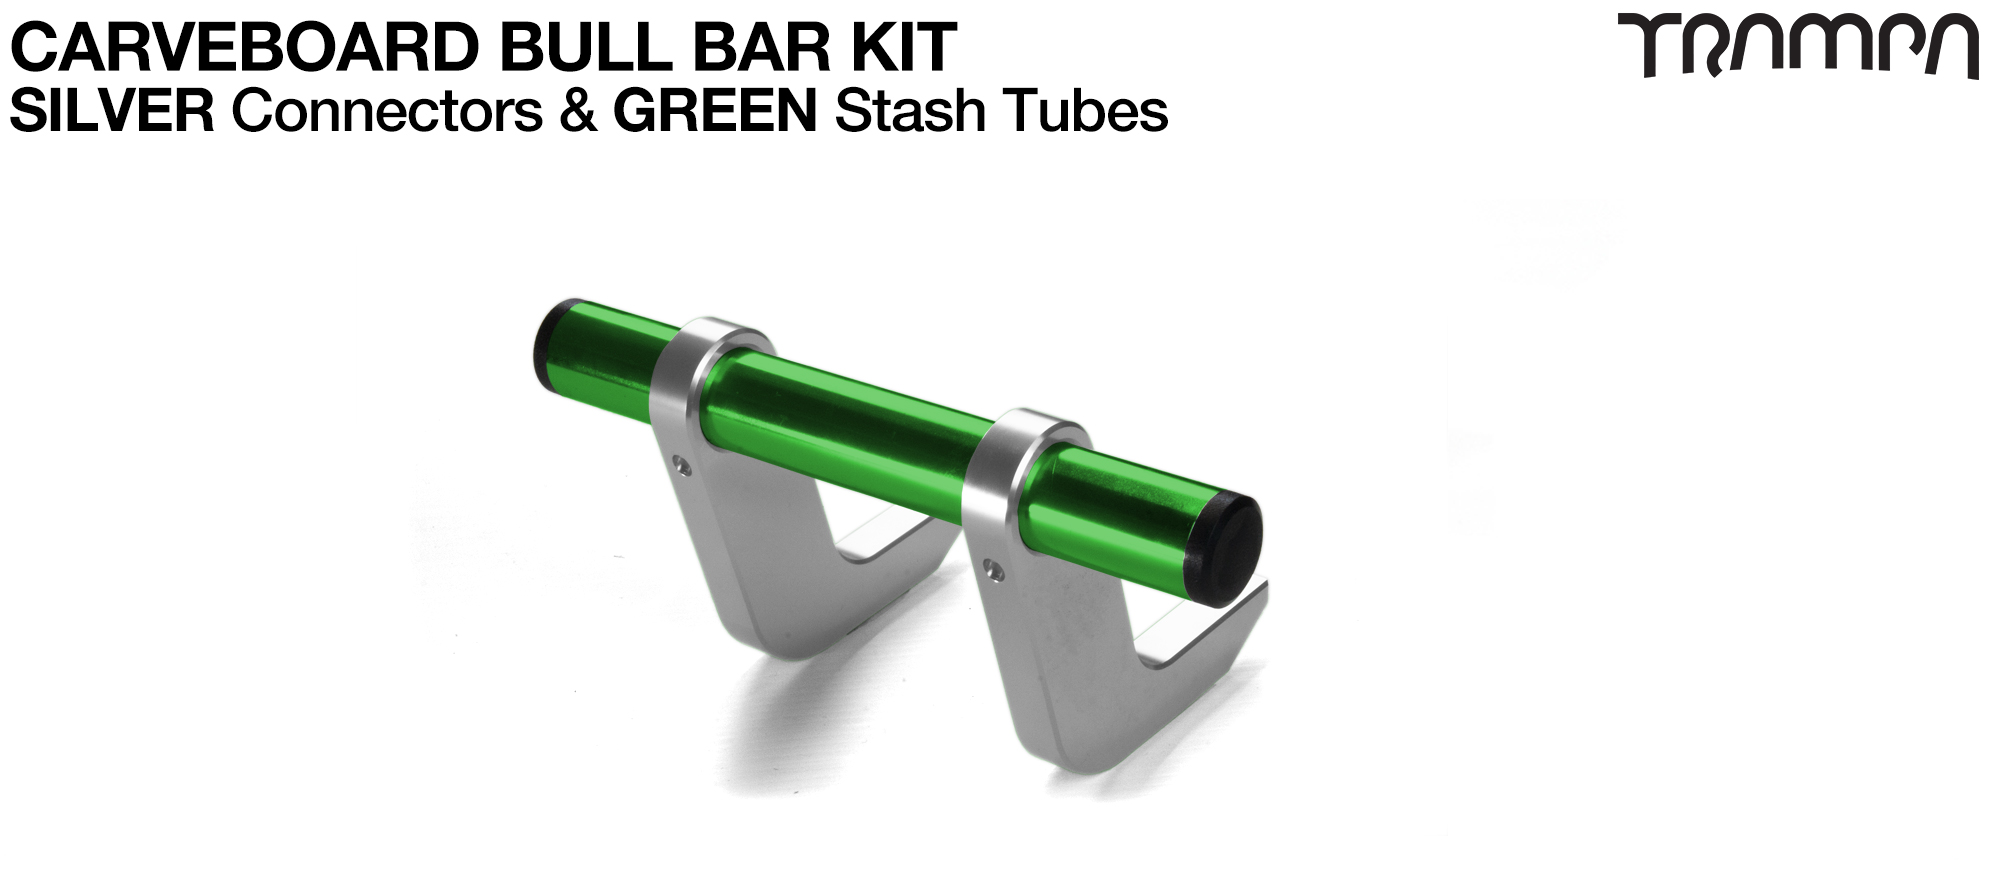 SILVER Uprights & GREEN Crossbar BULL BARS for CARVE BOARDS using T6 Heat Treated CNC'd Aluminum Clamps, Hollow Aluminium Stash Tubes with Rubber end bungs